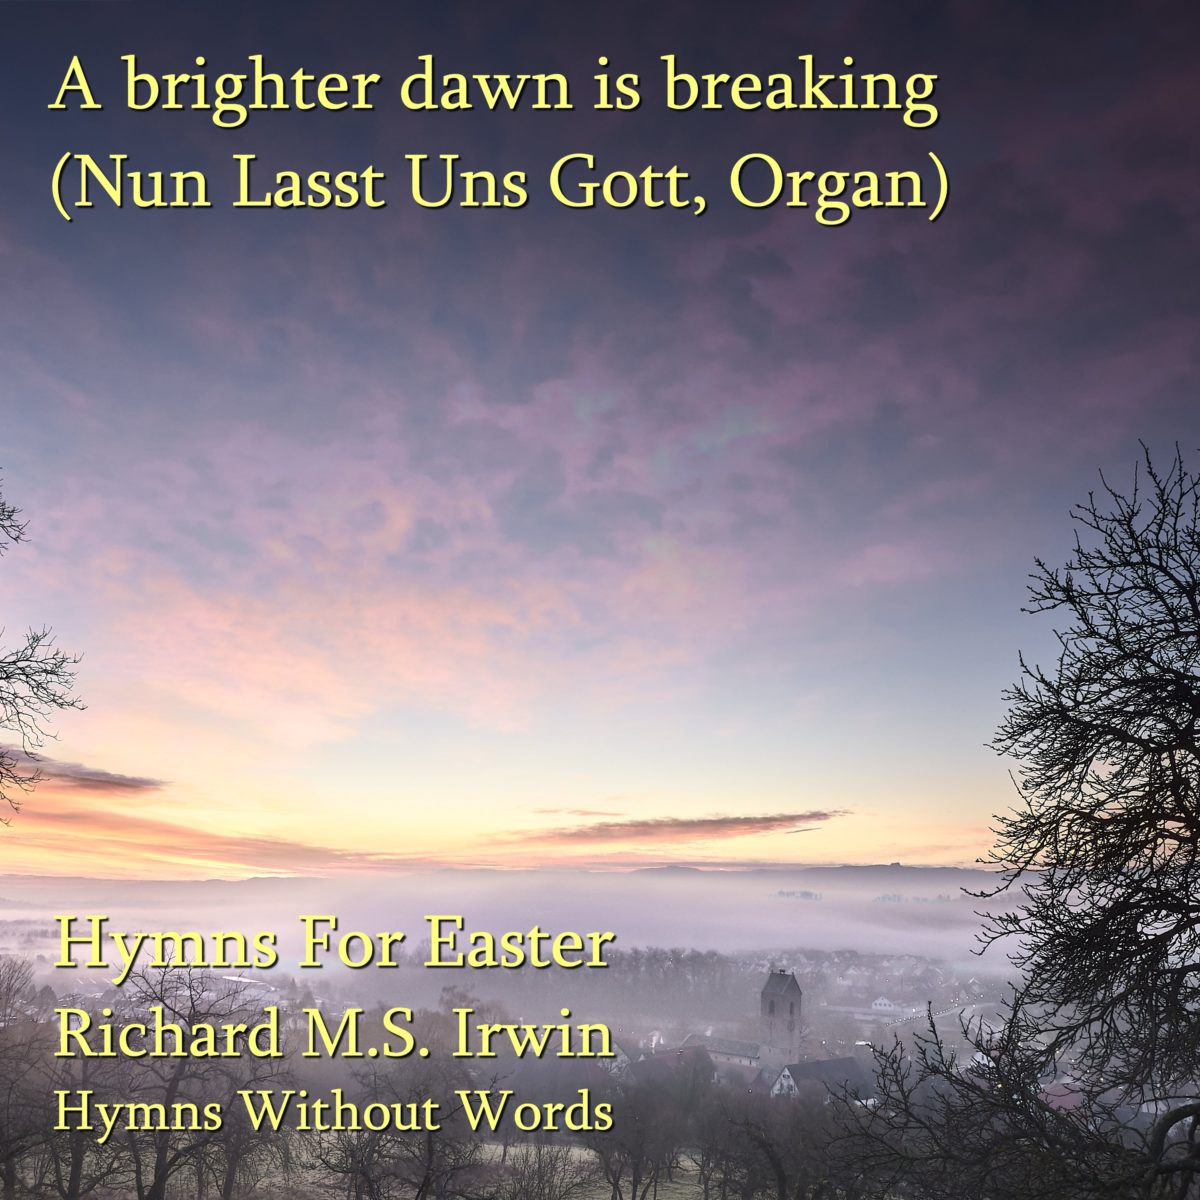 A Brighter Dawn Is Breaking (Nun Lasst Uns Gott, Organ, 4 Verses)